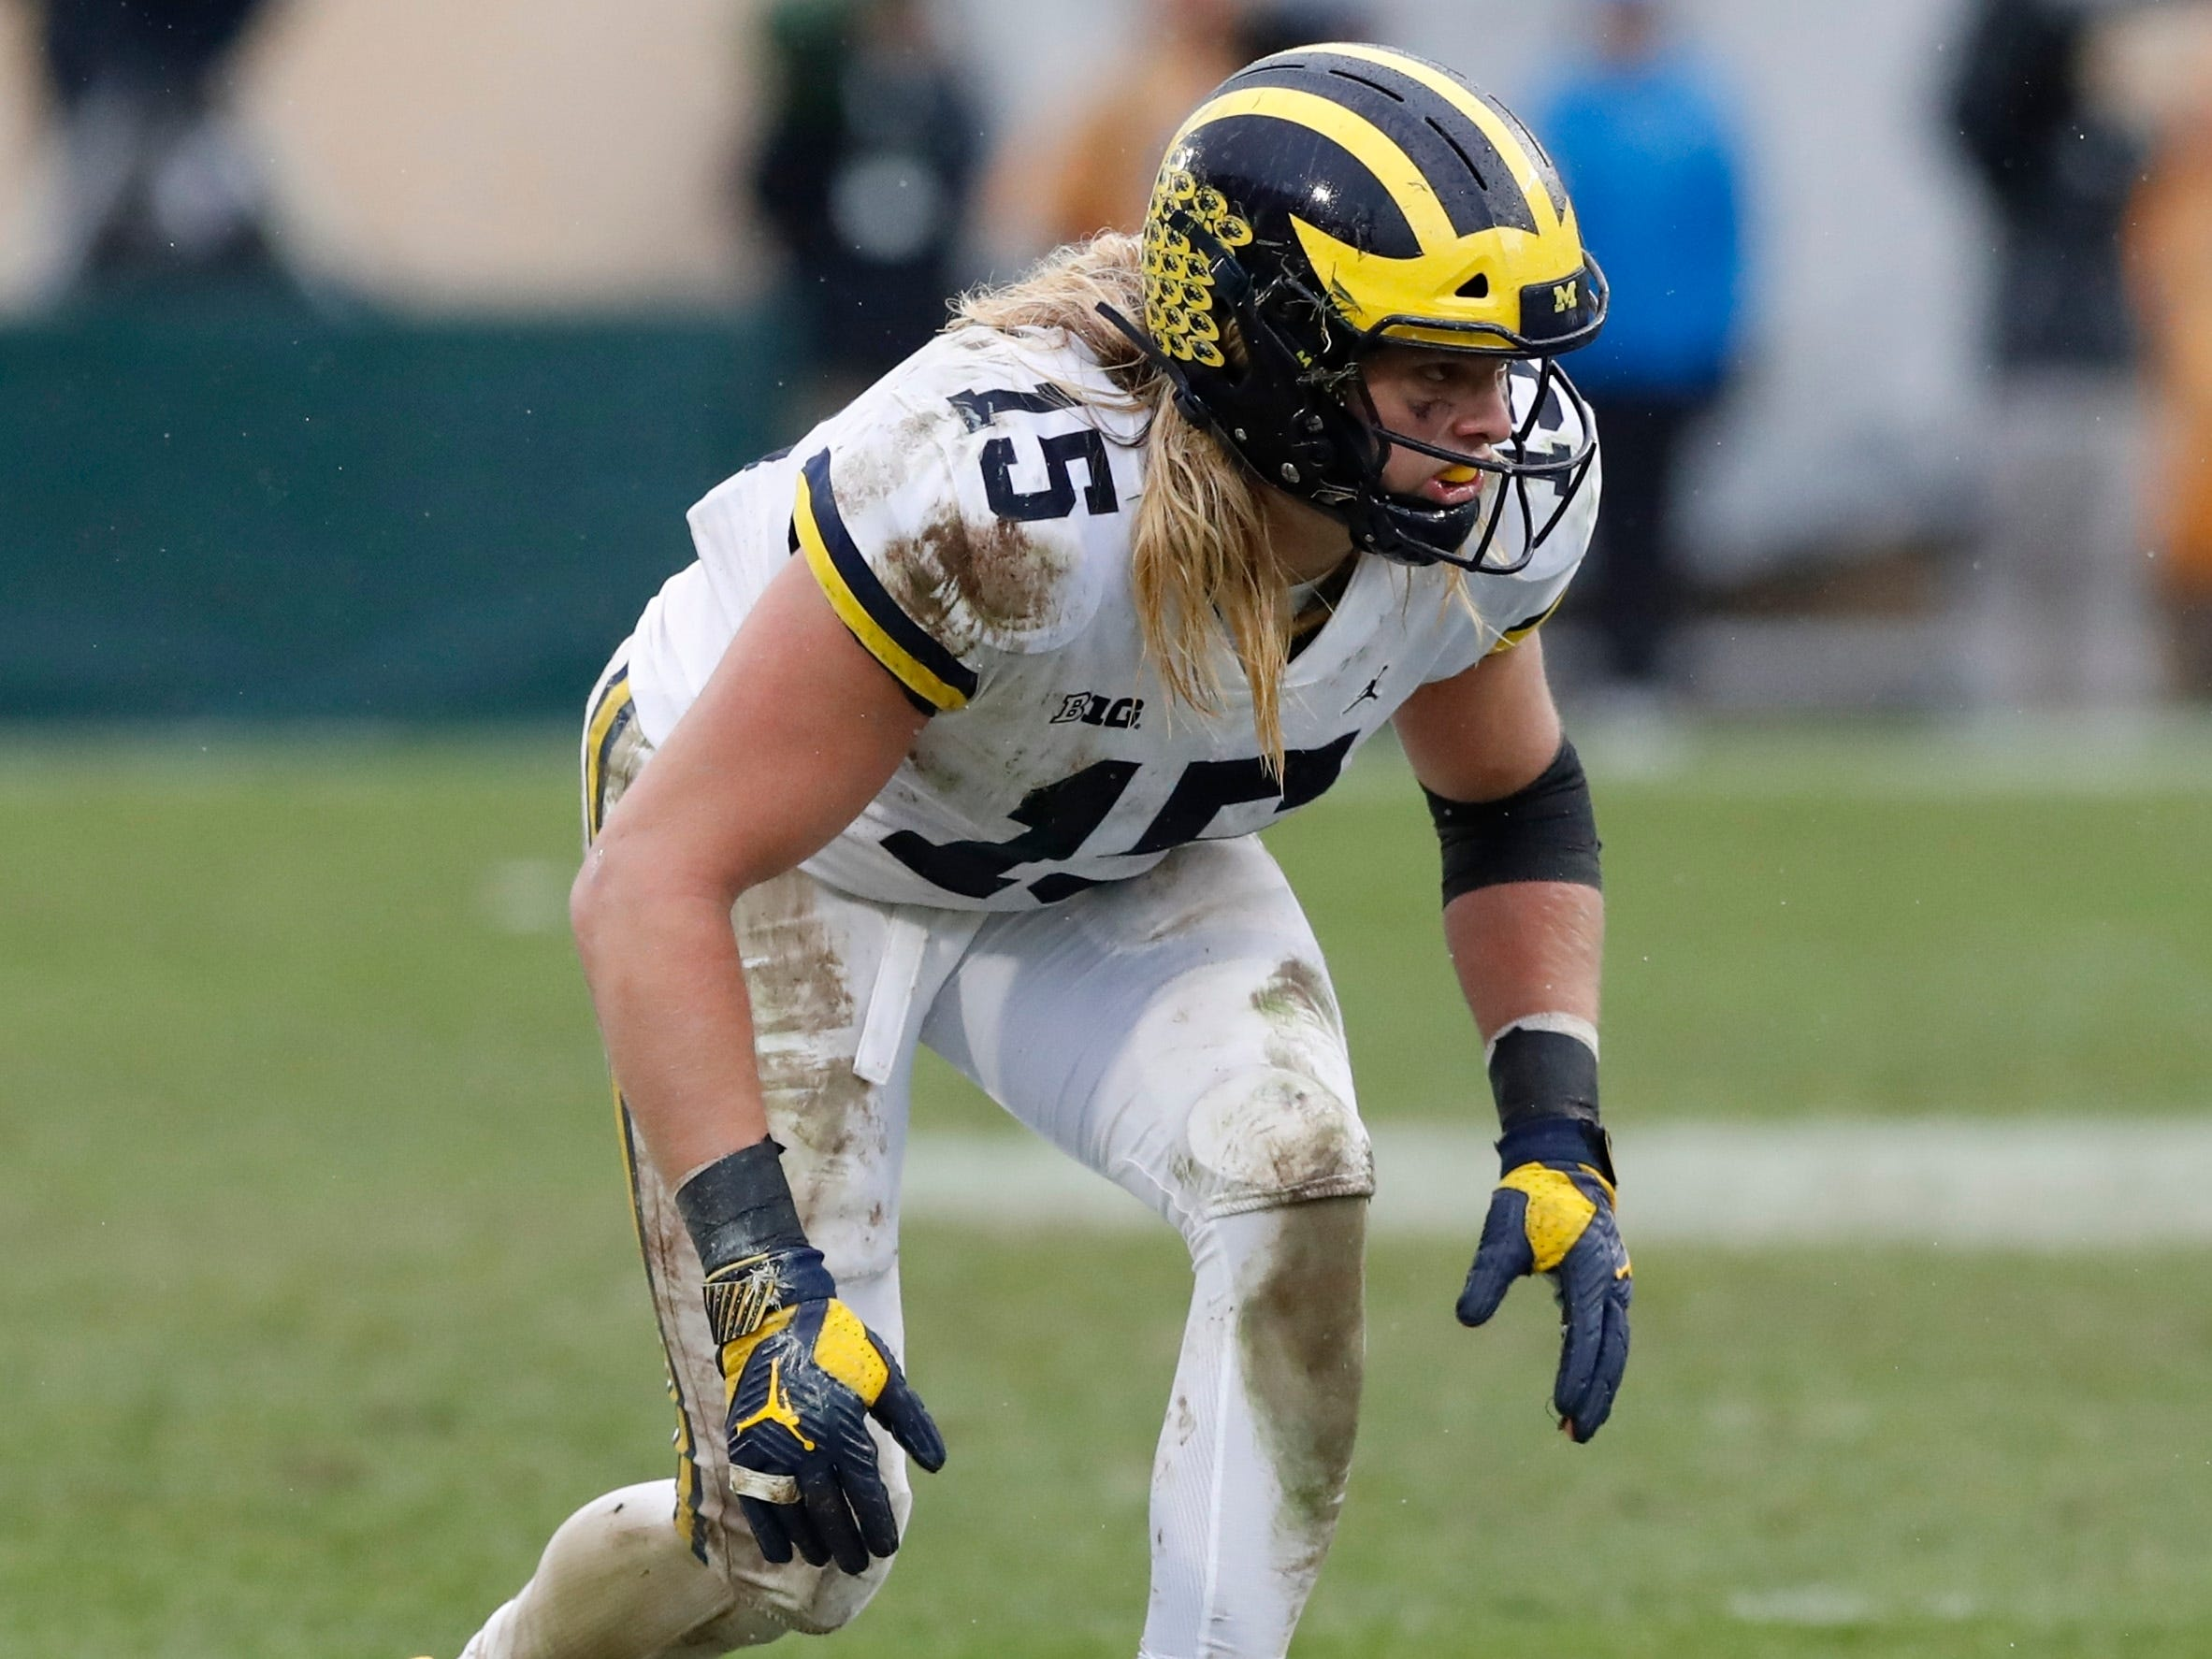 Michigan defensive lineman Chase Winovich prepares to rush the line during the second half of an NCAA college football game against Michigan State , Saturday, Oct. 20, 2018, in East Lansing, Mich.